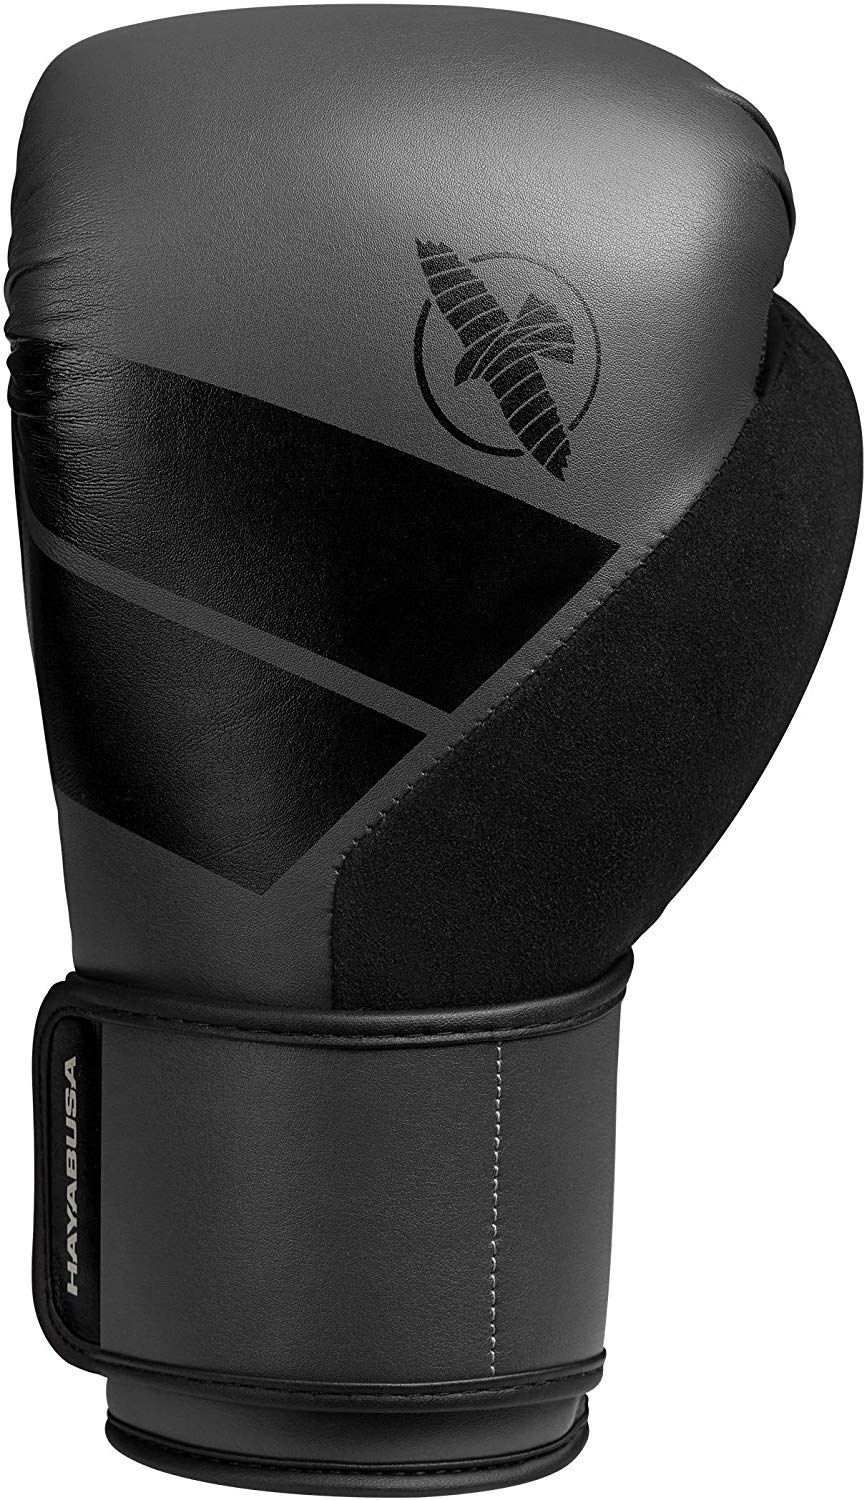 cddada393820b 2019的Amazon.com : Hayabusa Boxing S4 Training Gloves : Sports ...